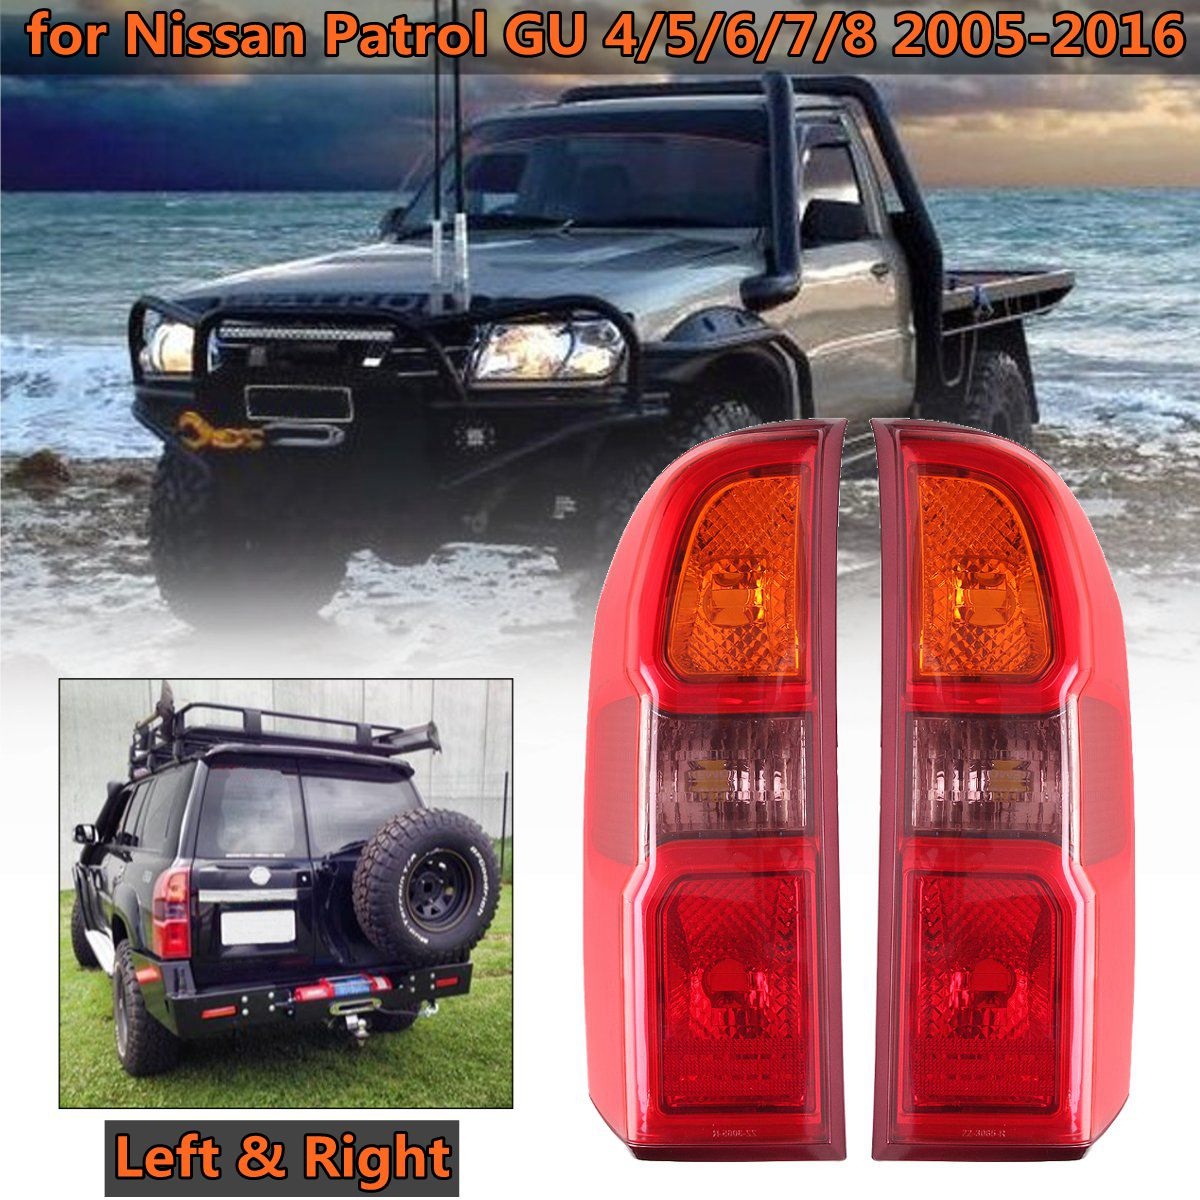 For Nissan Patrol GU 4/5/6/7/8 2005 2006 2007 2008 2009 2010 2011 2012~2016 Brake Lamp Rear Driver Passenger Side Tail Light 1 pc outer rear tail light lamp taillamp taillight rh right side gr1a 51 170 for mazda 6 2005 2010 gg page 5